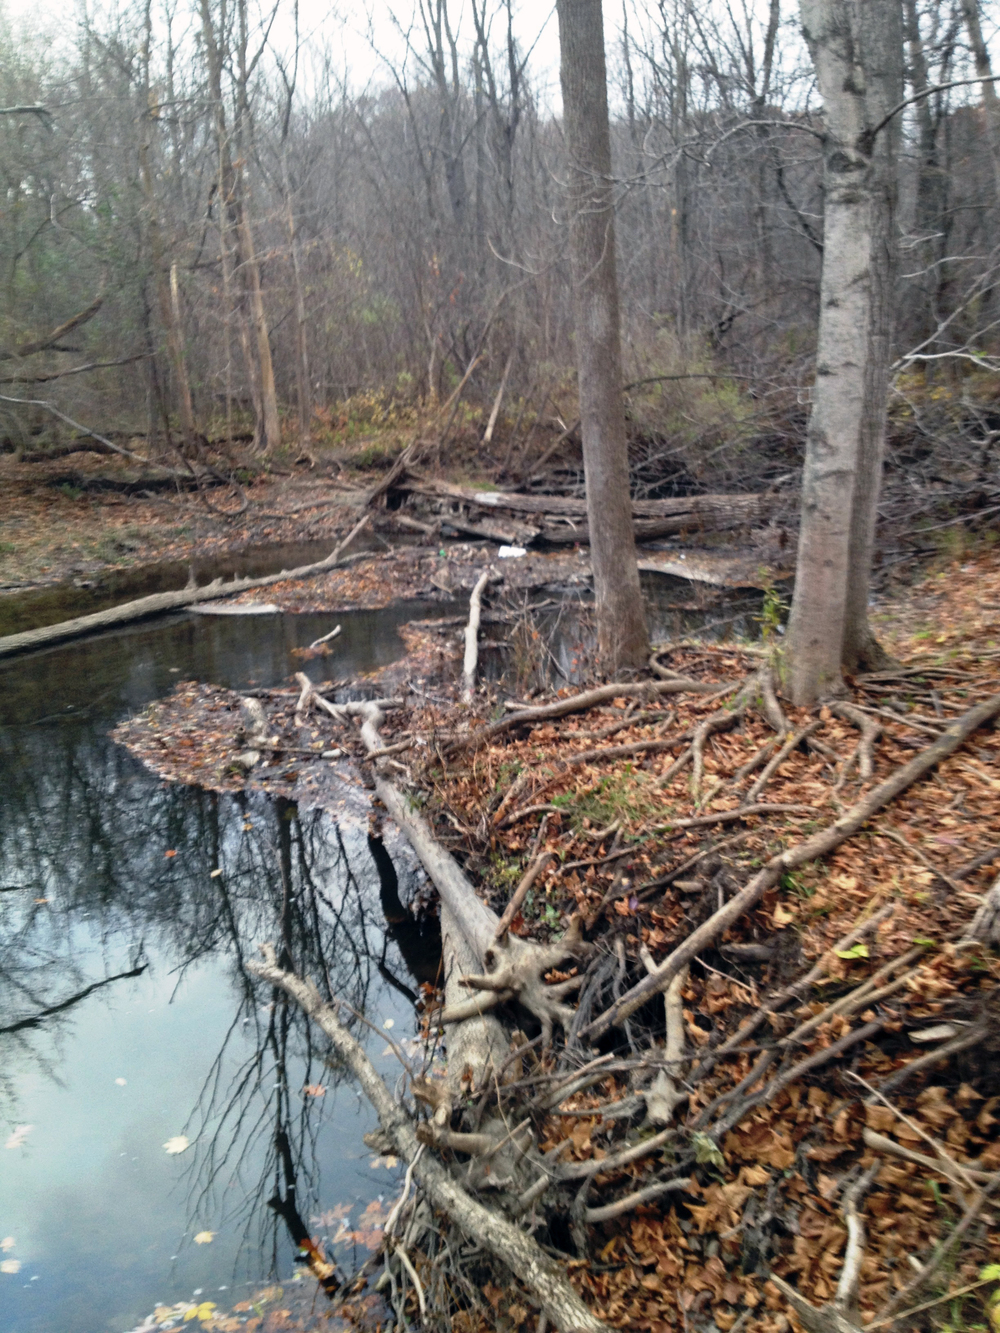 Stream channel erosion creating log jam on the Main Branch